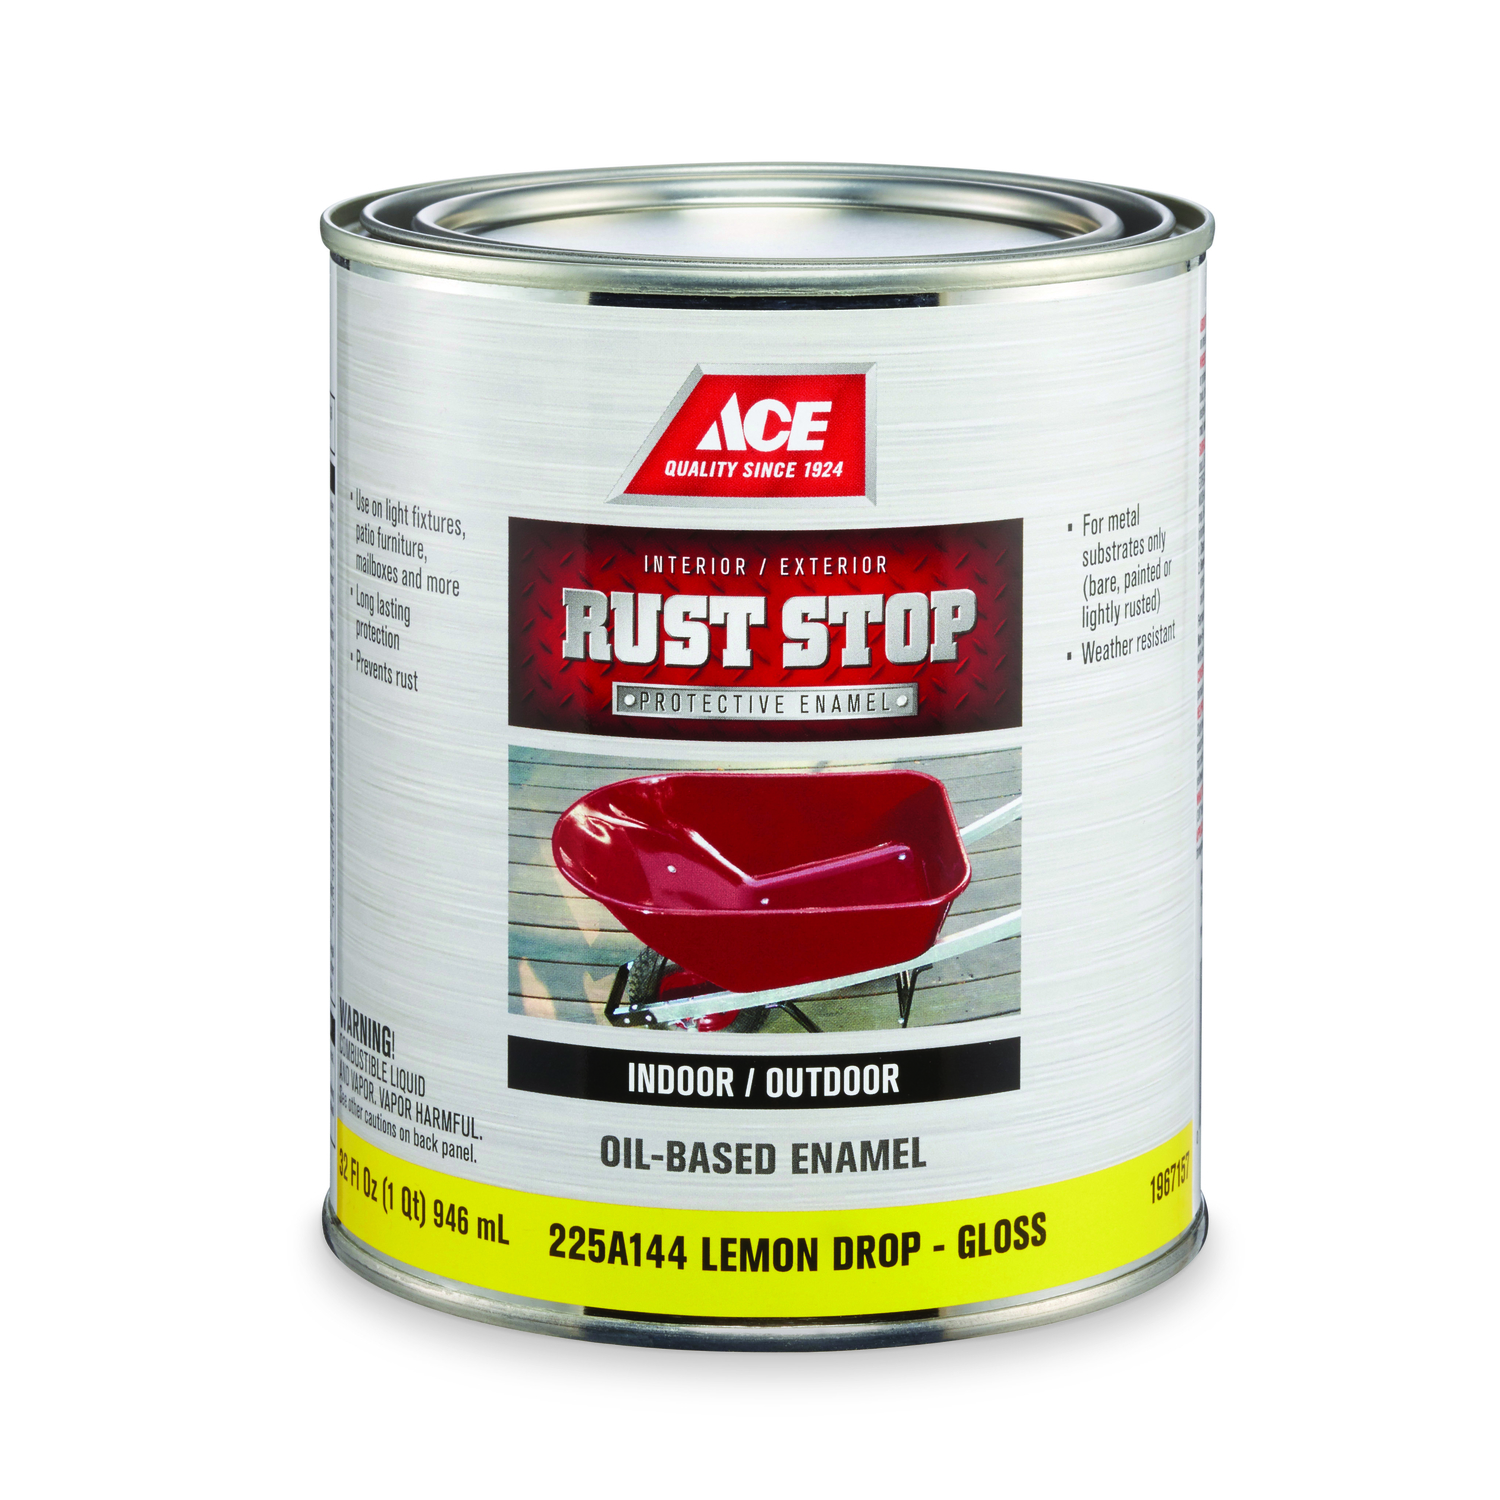 Ace  Rust Stop  Interior/Exterior  Indoor and Outdoor  Lemon Drop  Gloss  Rust Prevention Paint  1 q